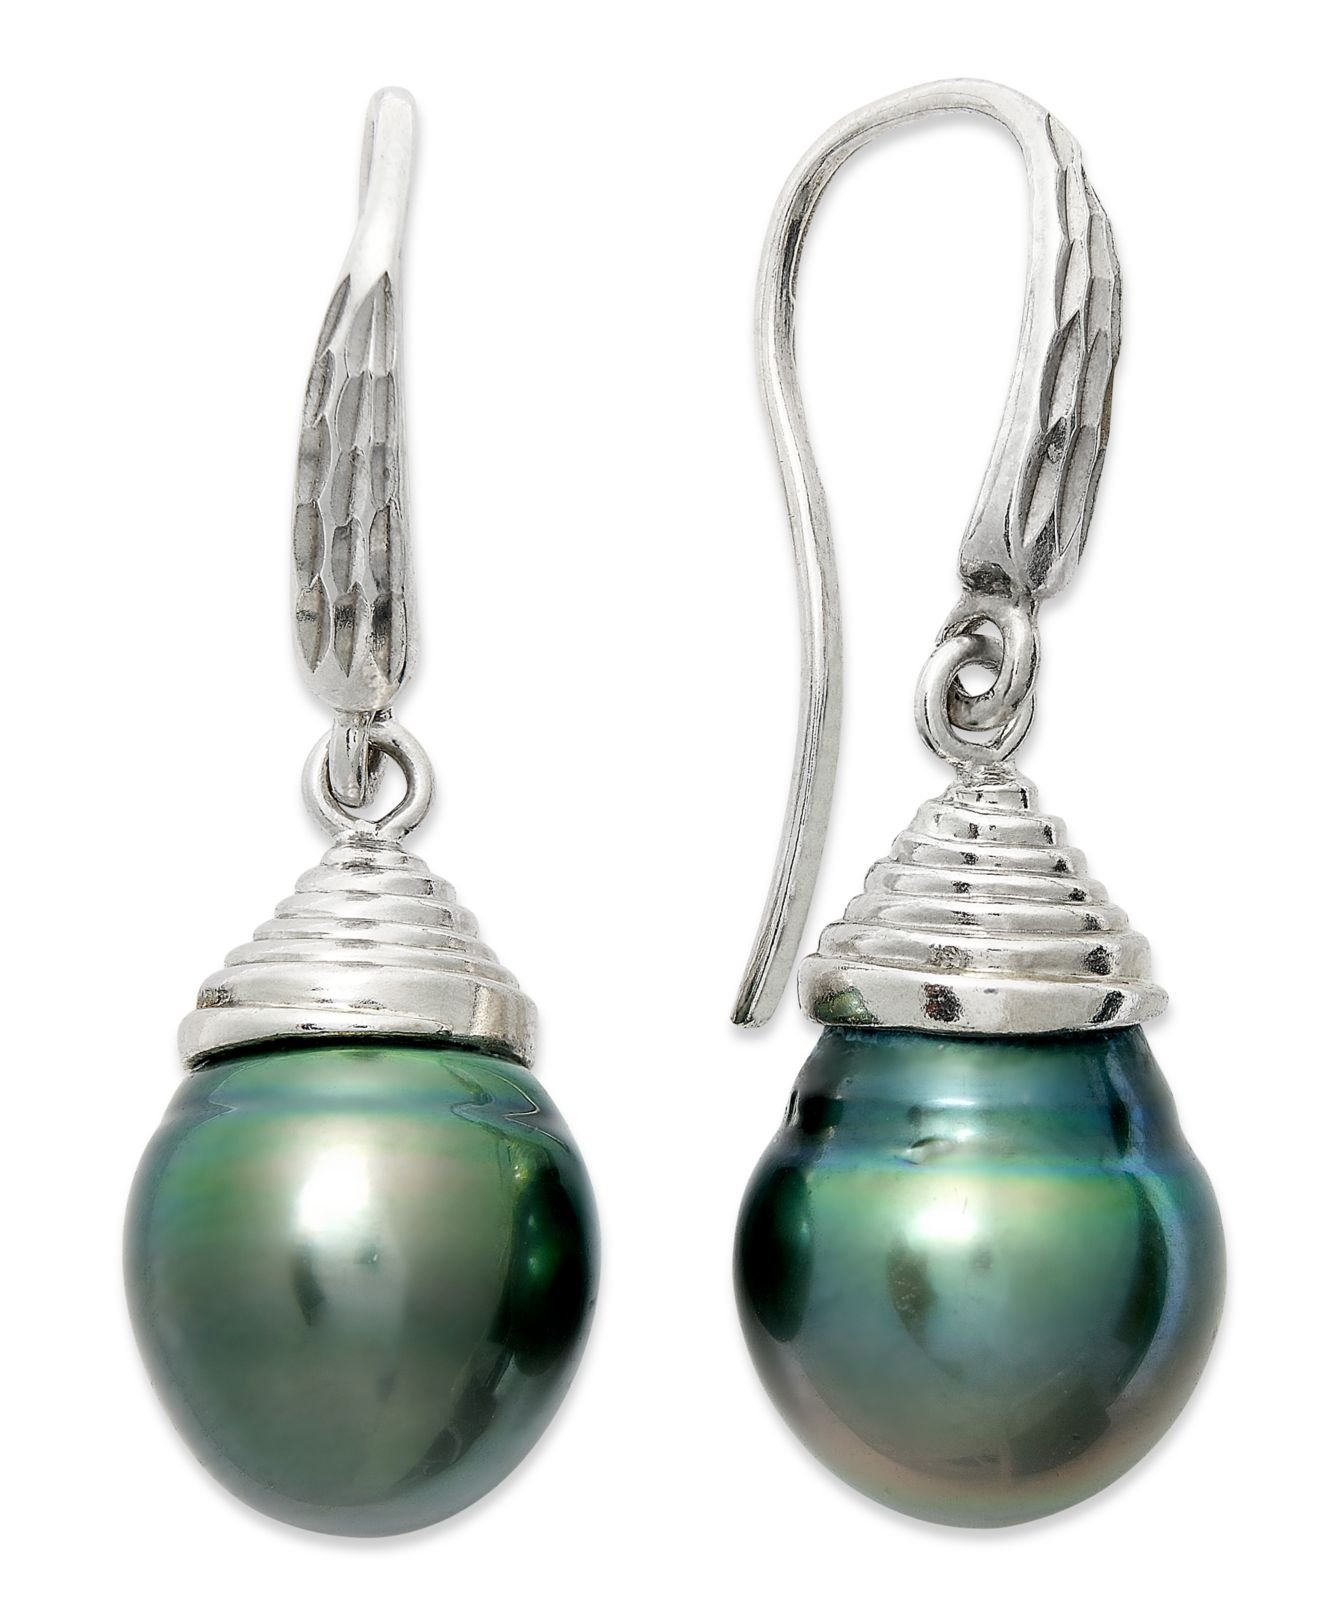 macy s pearl earrings macy s pearl earrings sterling silver cultured tahitian 6076